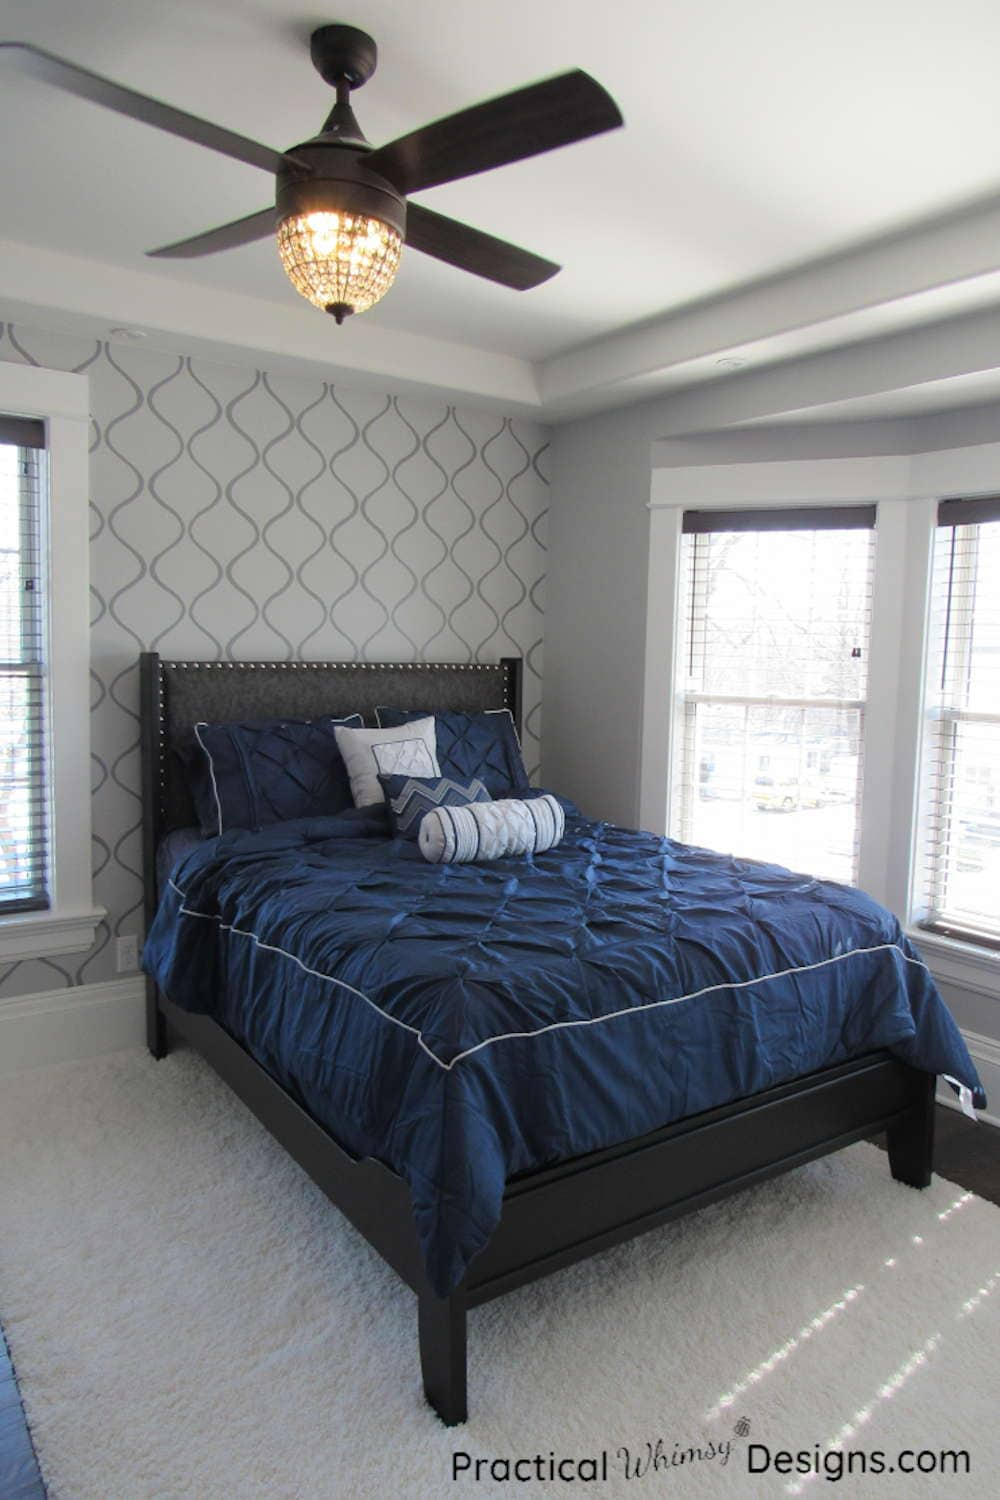 Master bed with navy comforter and gray stenciled accent wall in master bedroom.